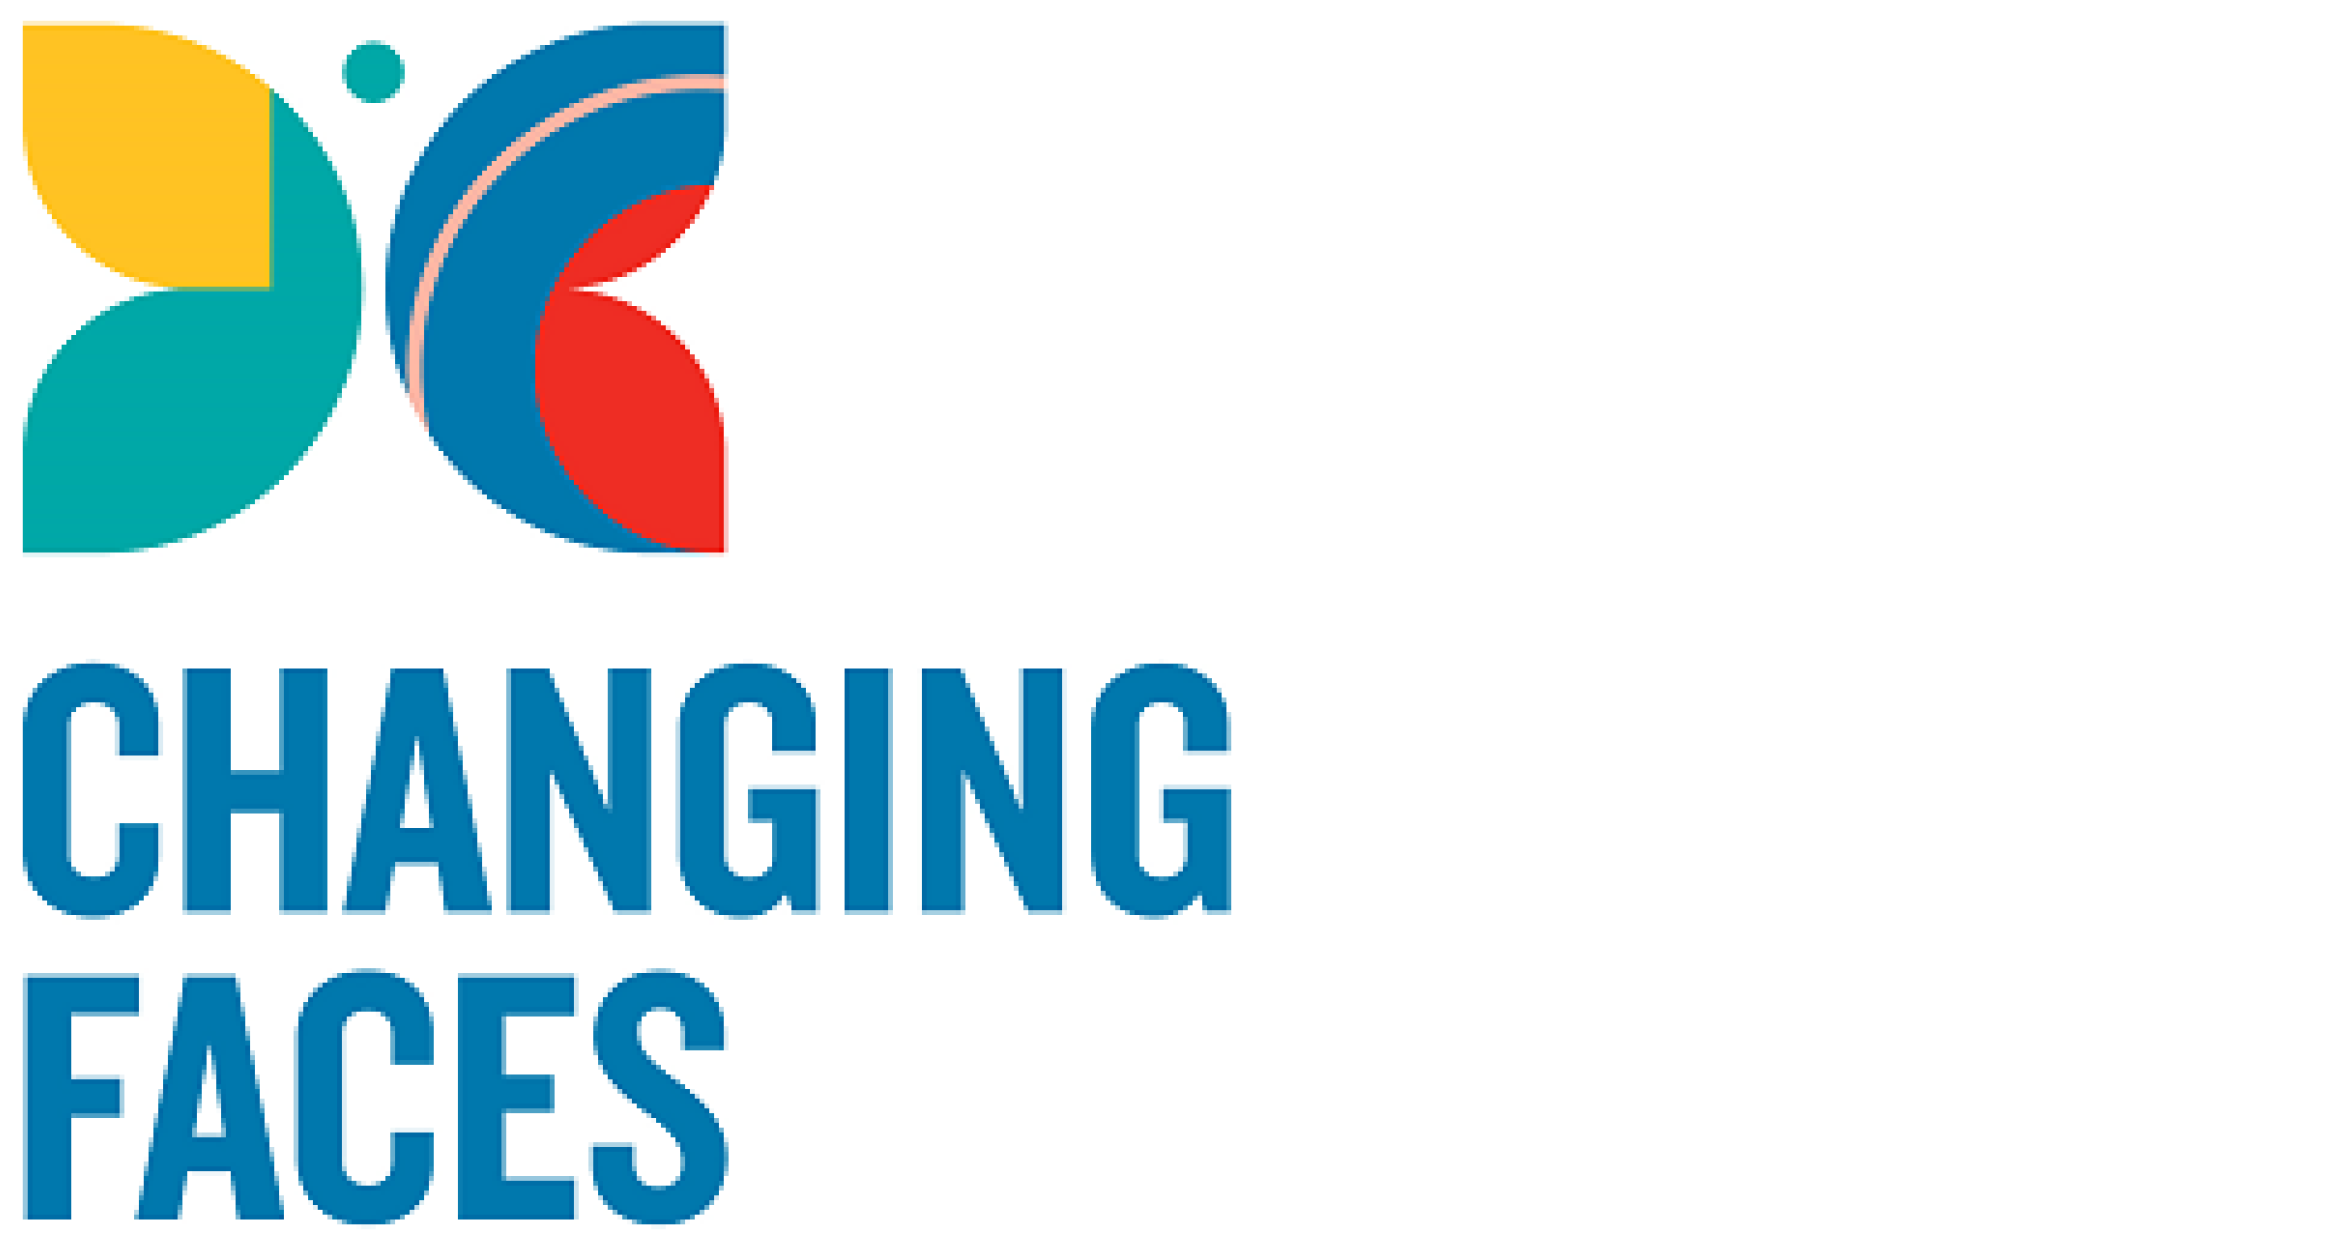 Changing faces logo